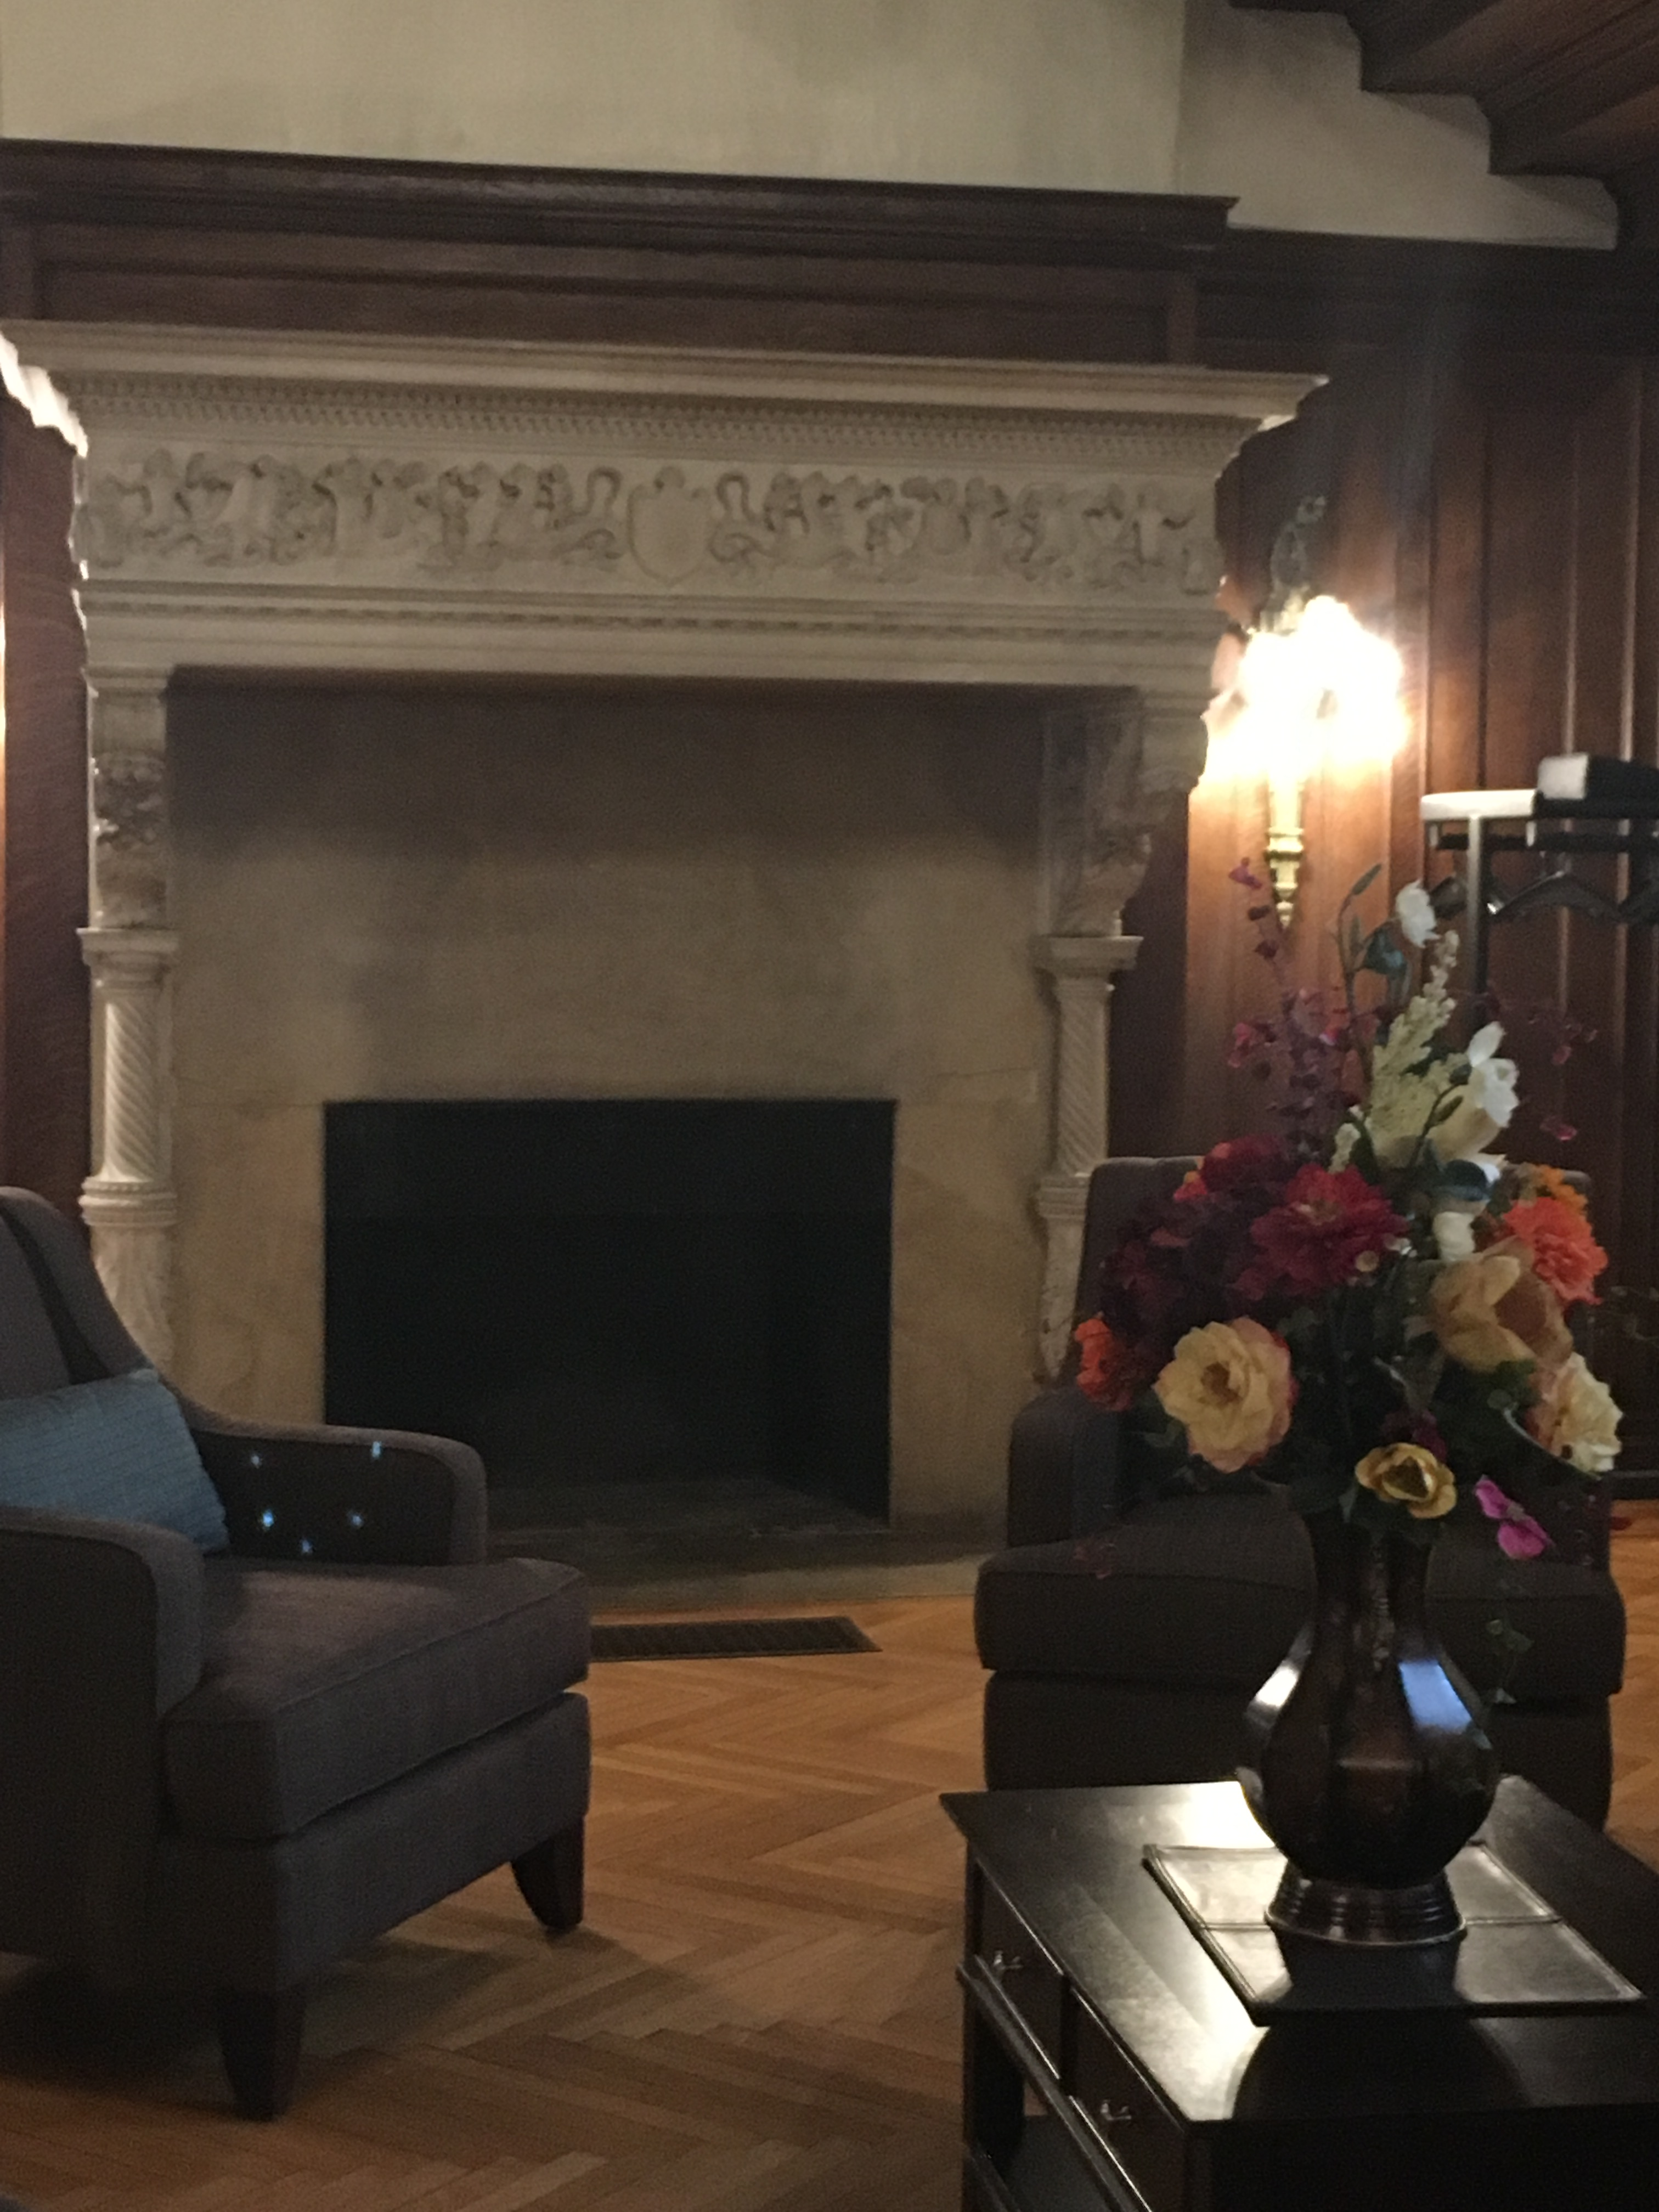 This is one of the many marble fireplaces in Fairlawn Estate. This fireplace is located in the foyer.